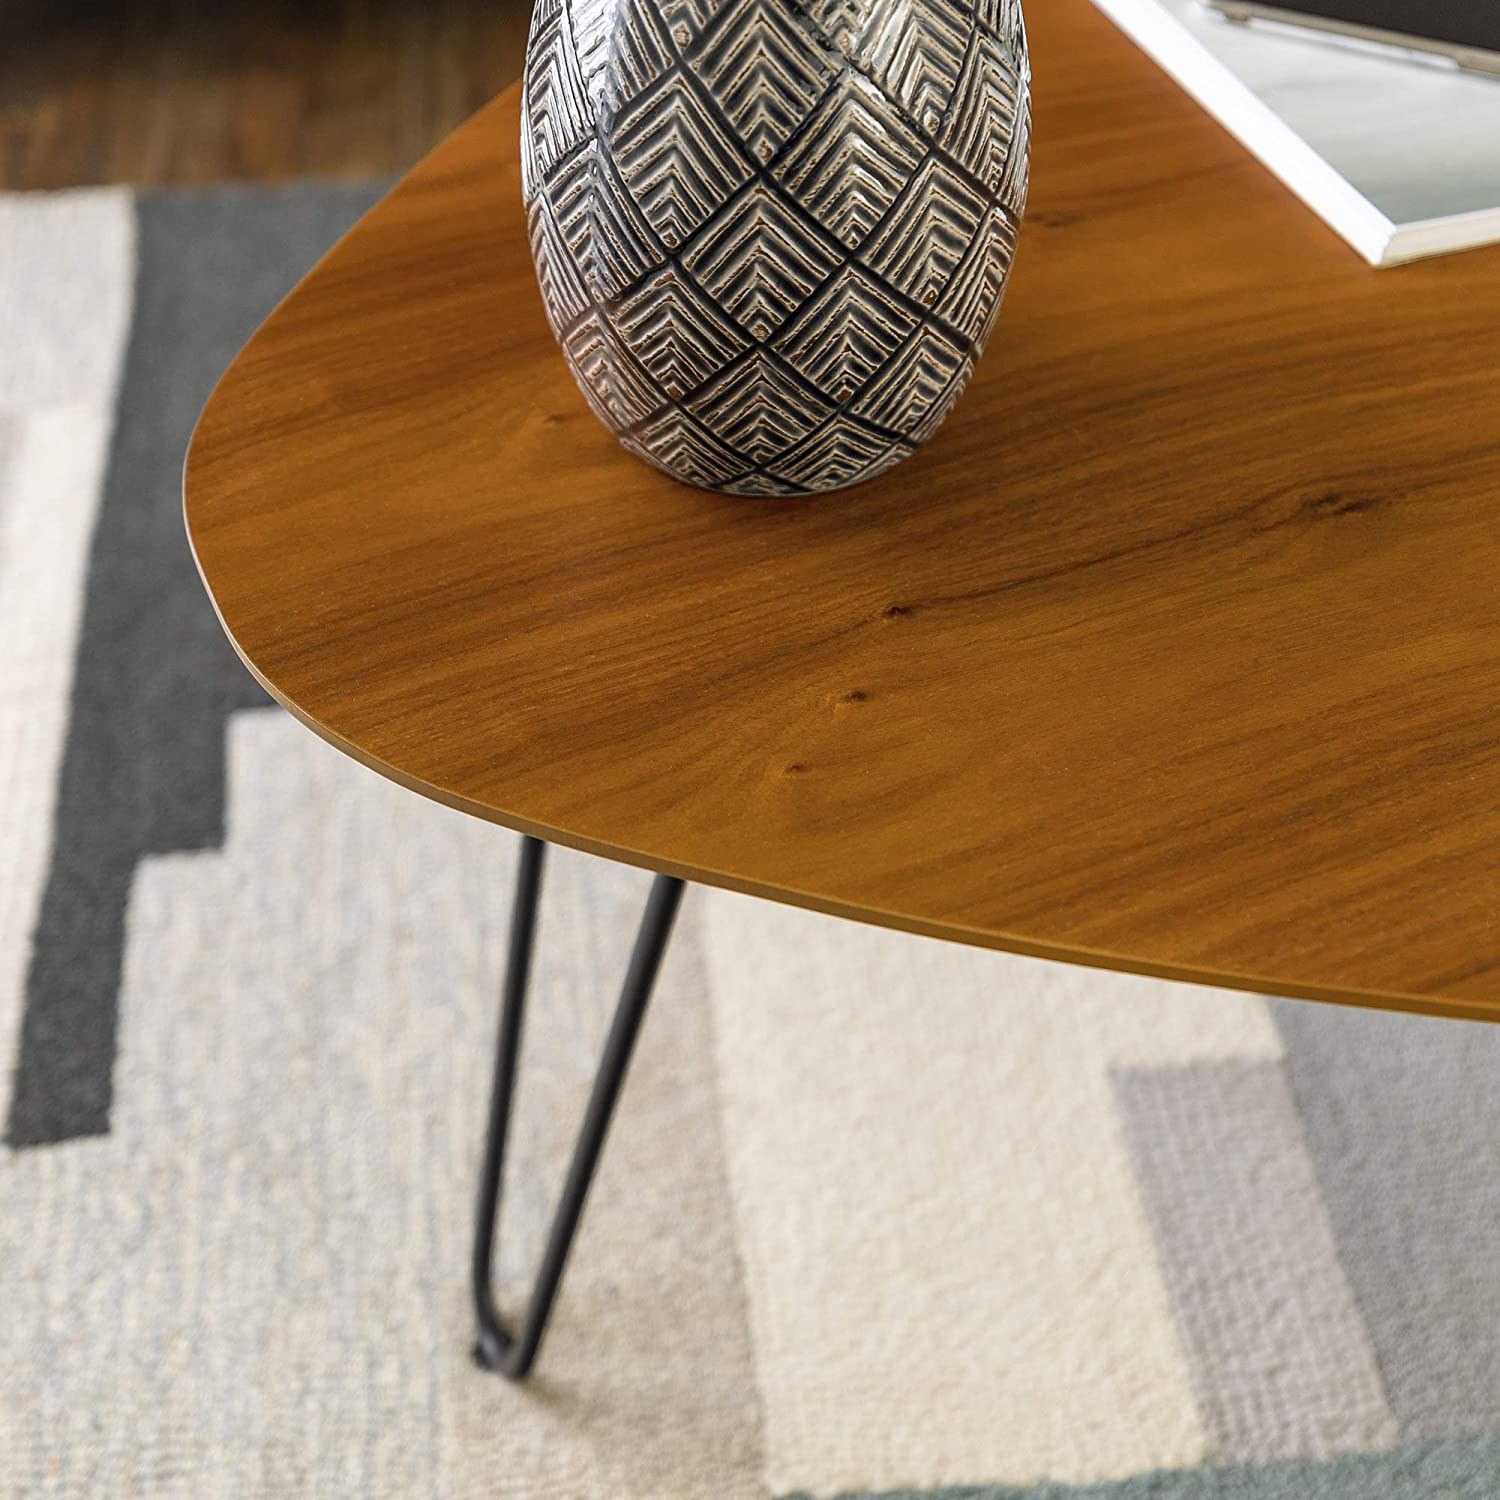 WE Furniture Mid Century Modern Hairpin Coffee Accent Table Living Room, 32 Inch, Walnut